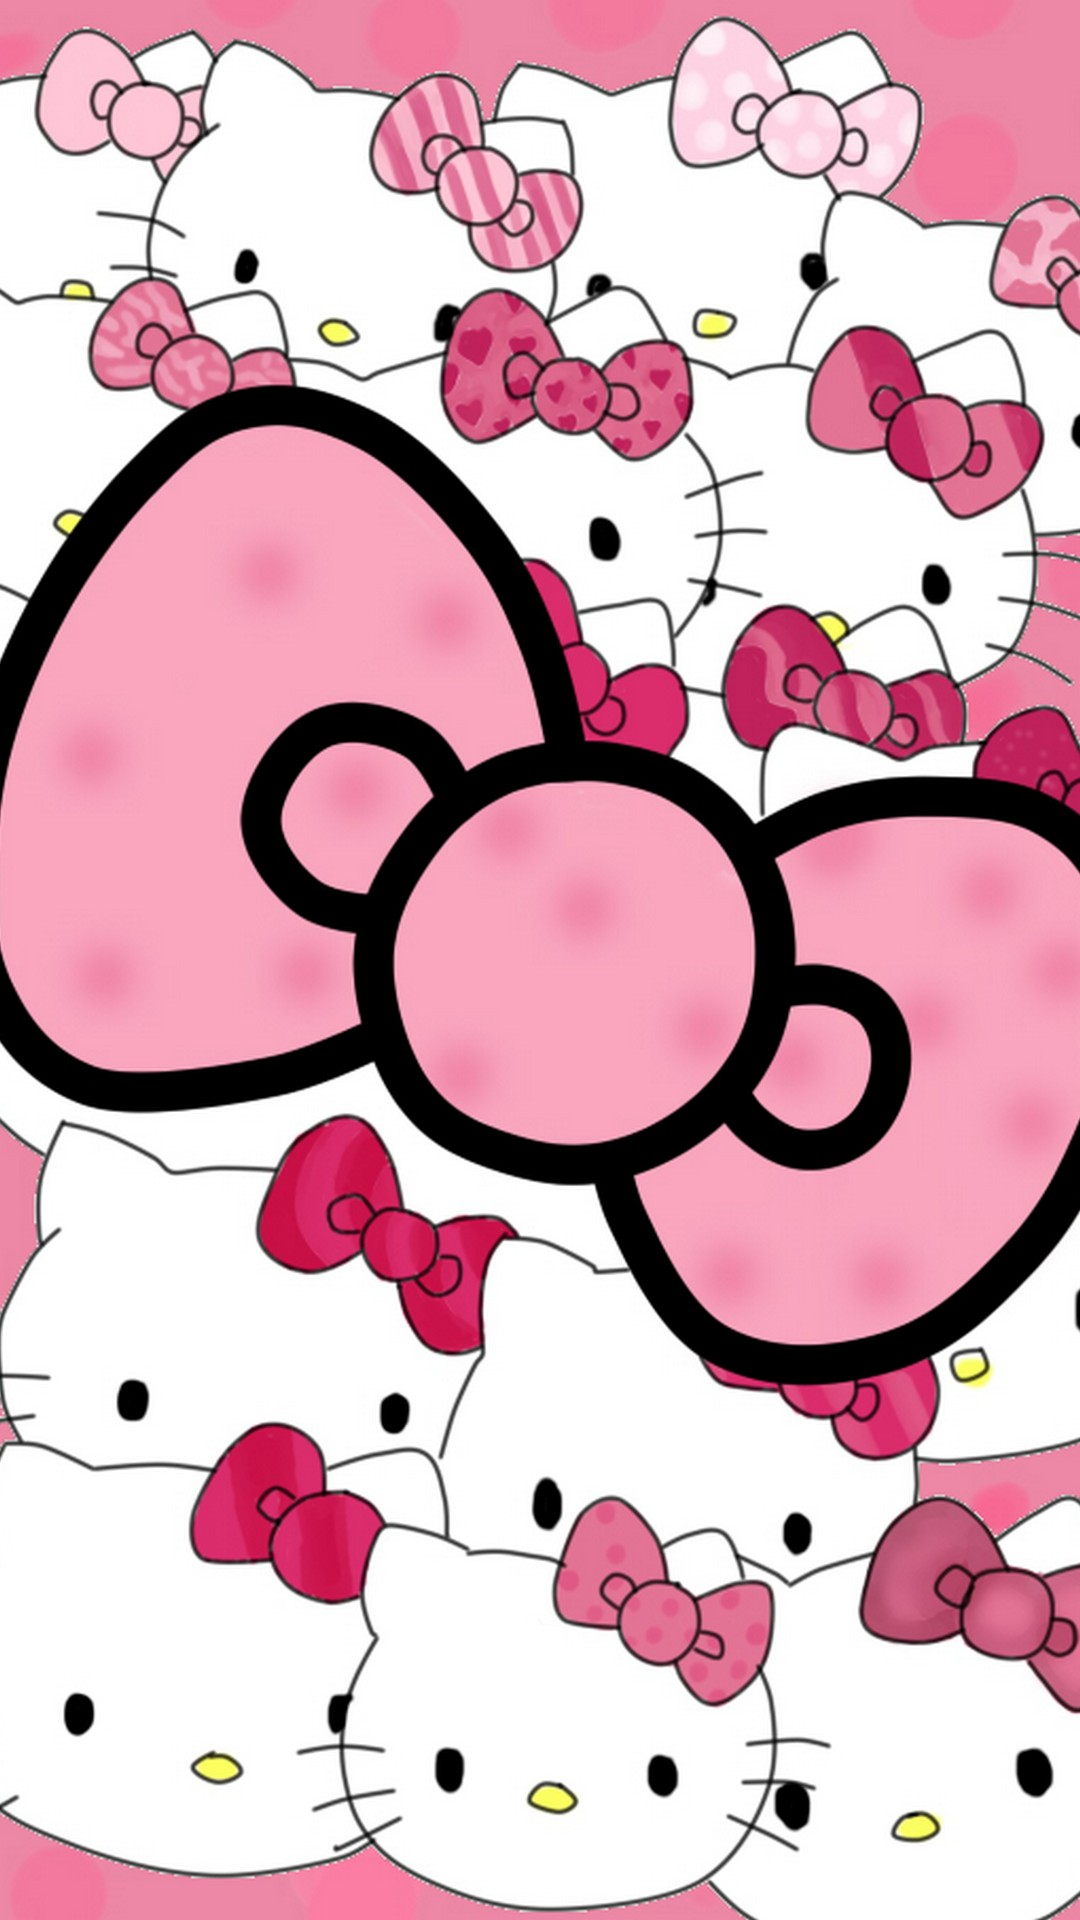 Free download Sanrio Hello Kitty Wallpaper For Android 2019 Android Wallpapers 1080x1920 for ...